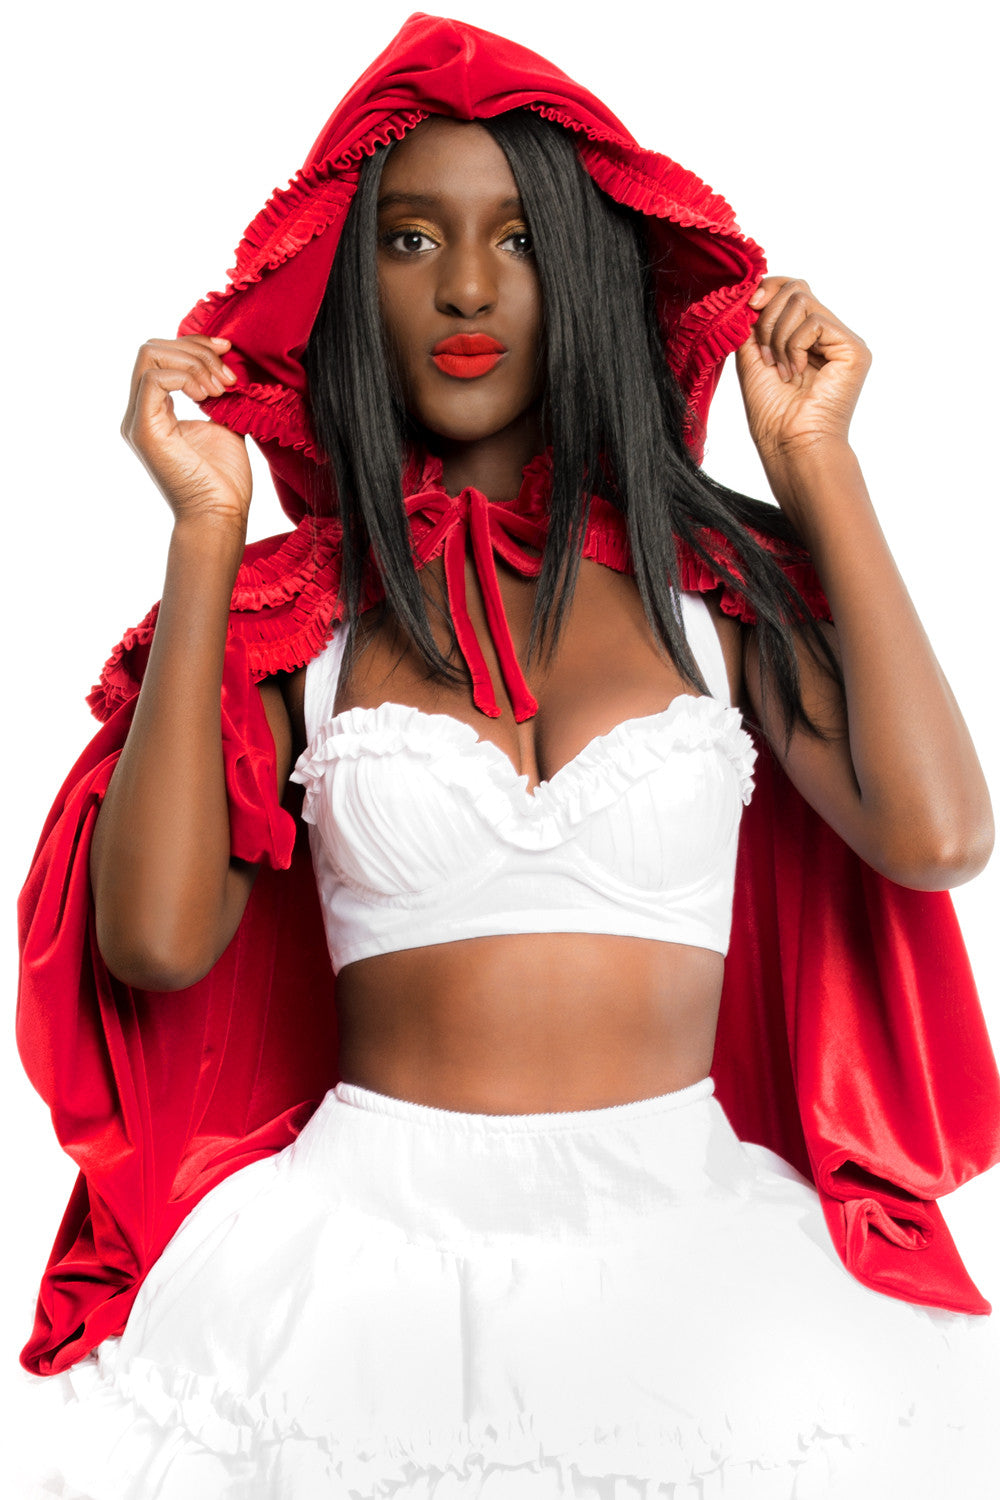 Red Riding Hood Bra